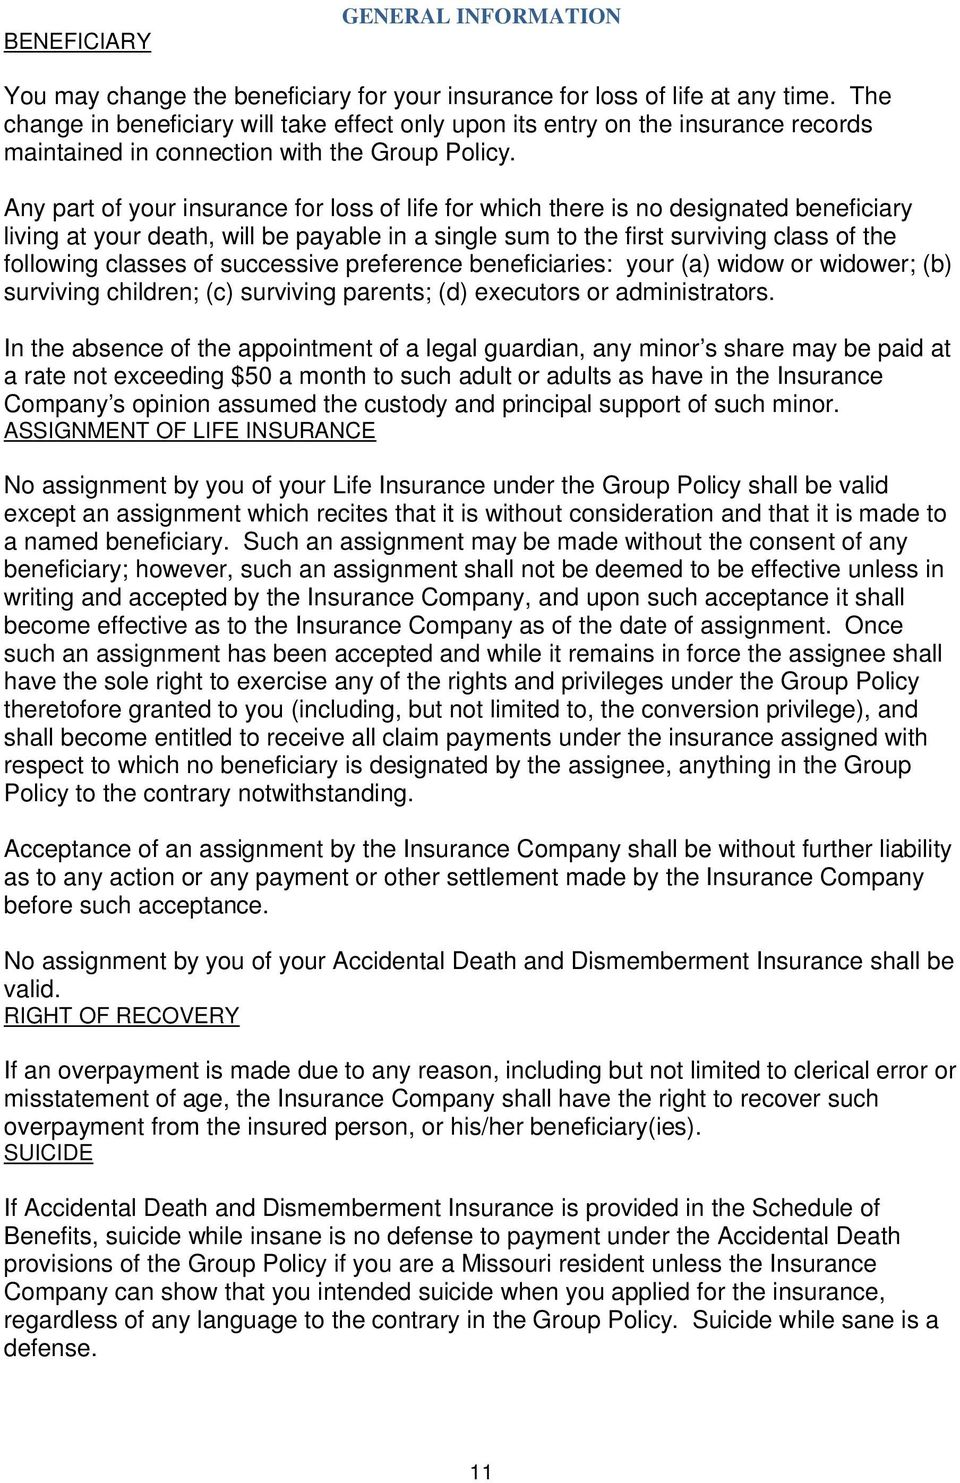 Any part of your insurance for loss of life for which there is no designated beneficiary living at your death, will be payable in a single sum to the first surviving class of the following classes of